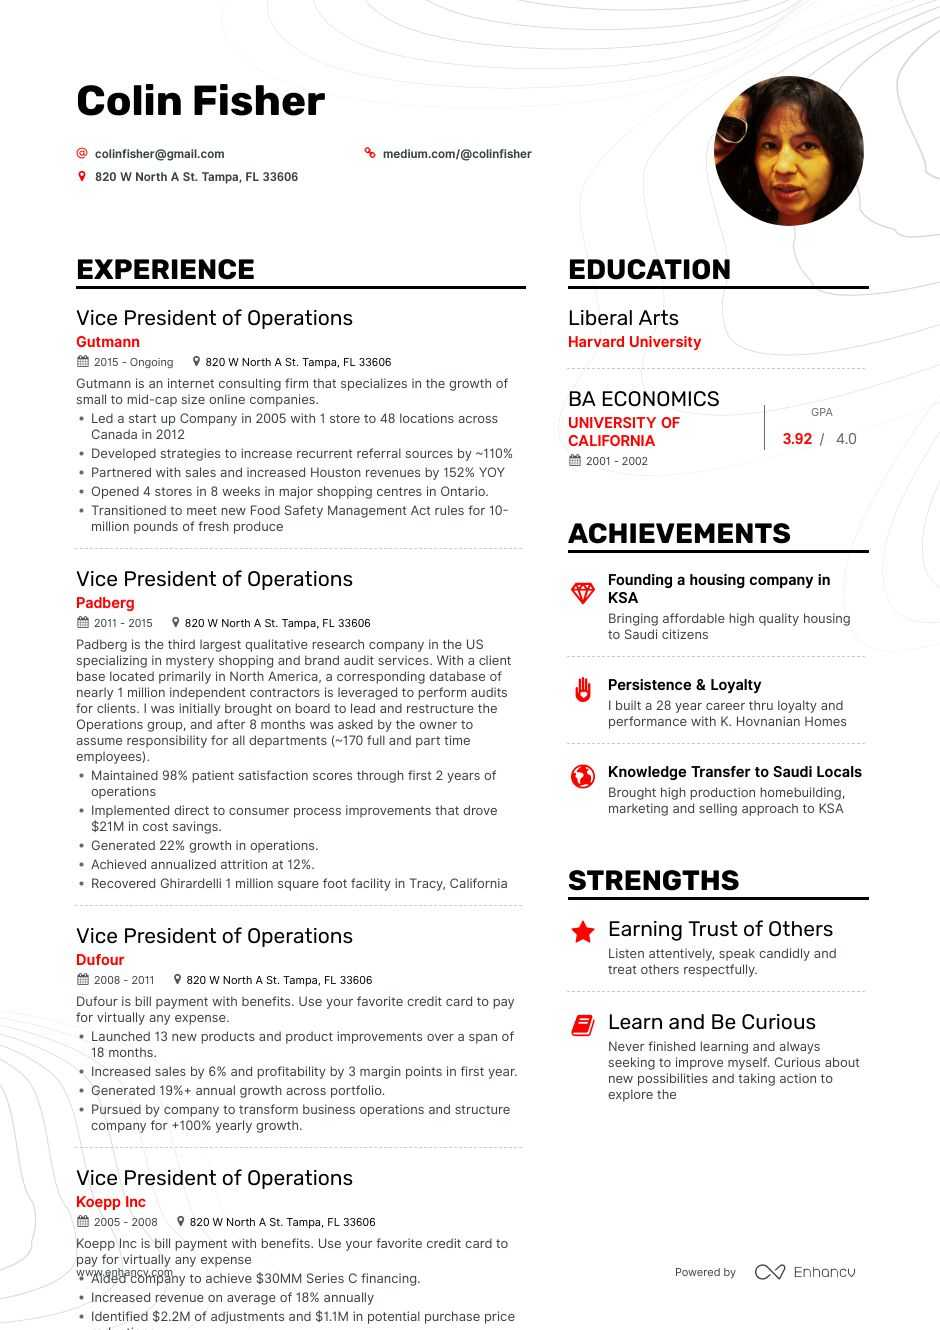 vice president of operations resume example for enhancv completely free templates bank Resume Vice President Of Operations Resume